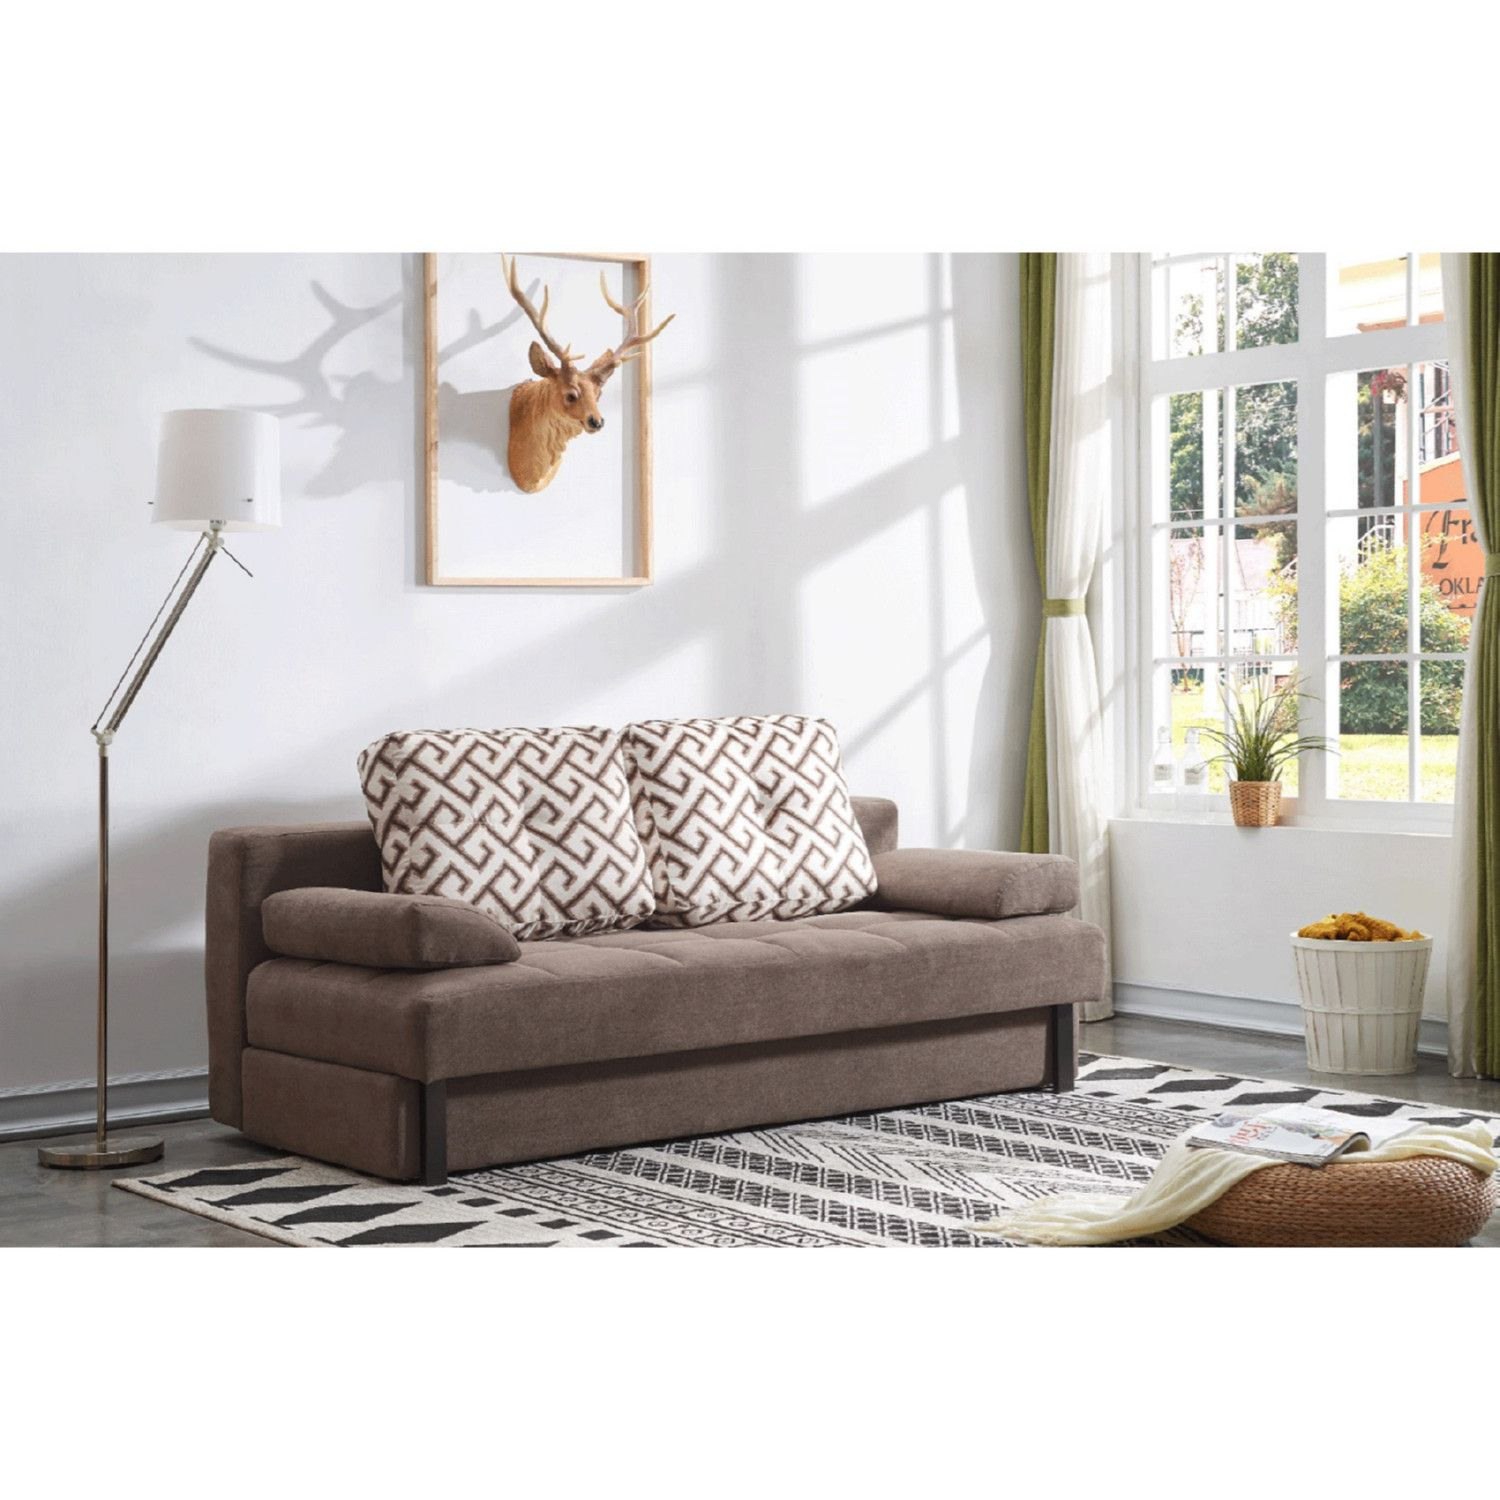 Tremendous Esf Imports 98 Sofa Bed Dark Brown Fabric In 2019 Products Unemploymentrelief Wooden Chair Designs For Living Room Unemploymentrelieforg